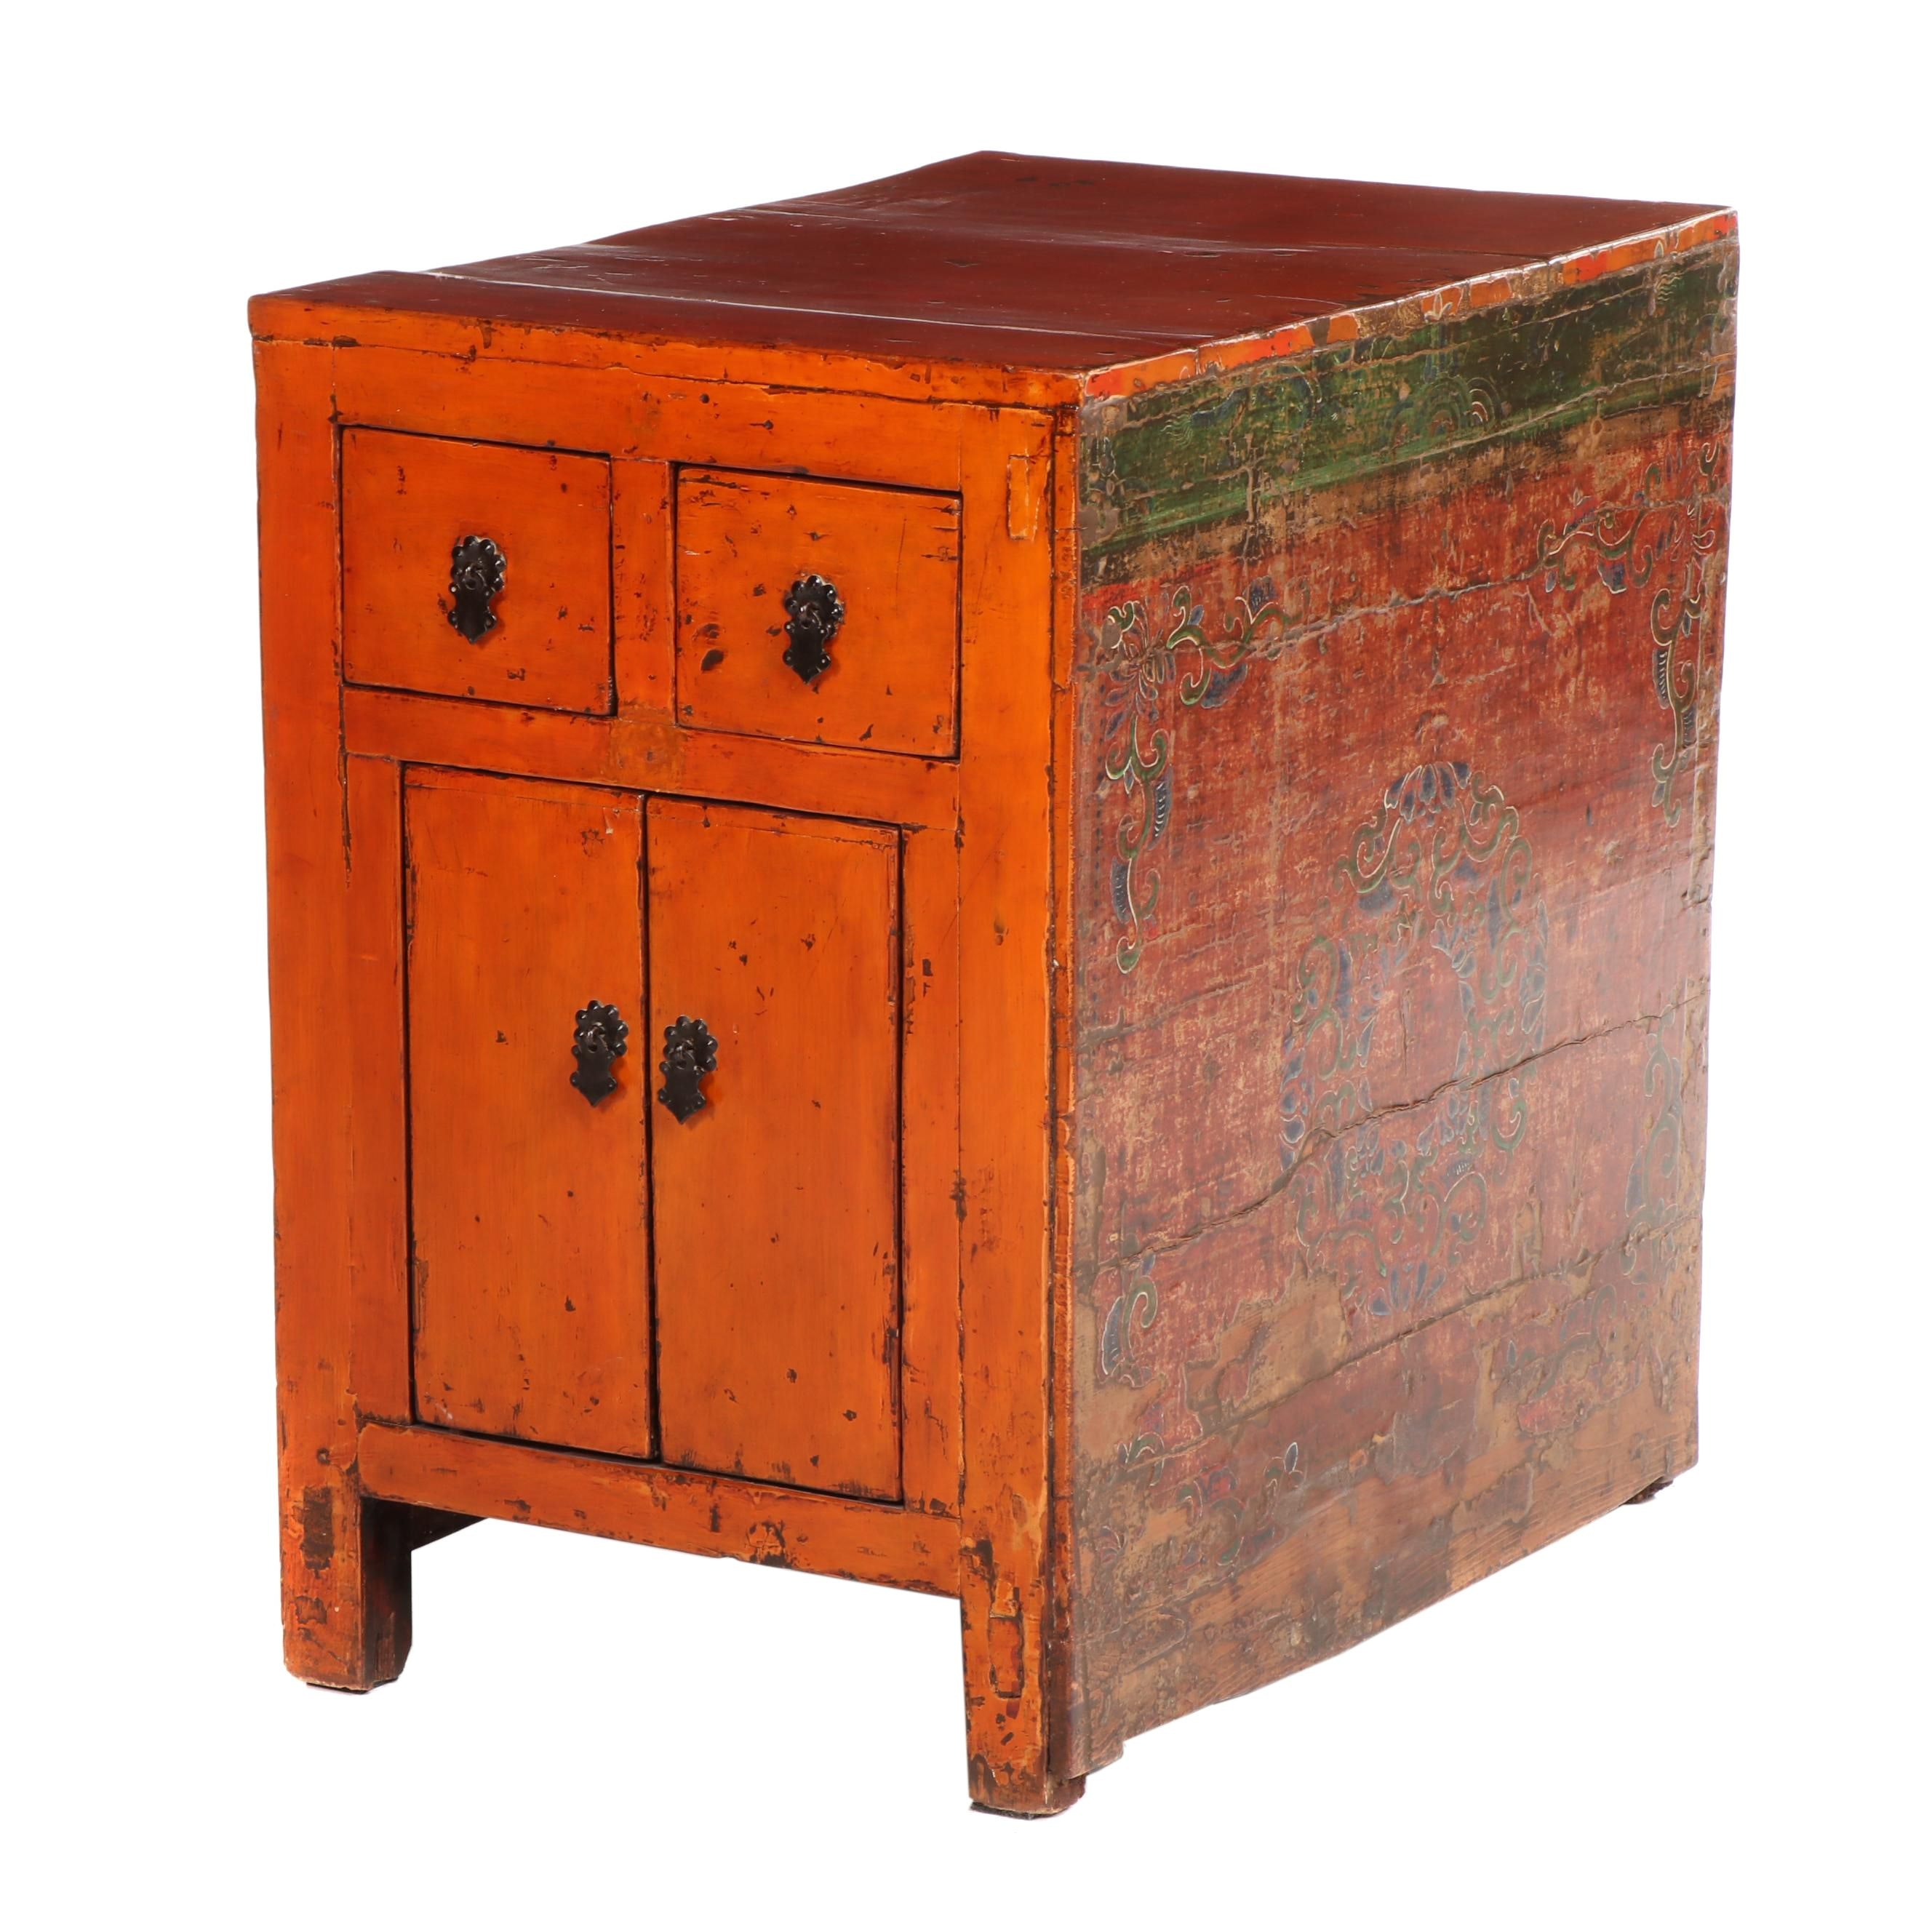 Sino-Tibetan Red Lacquered and Painted Wood Cabinet, Early/Mid-20th Century